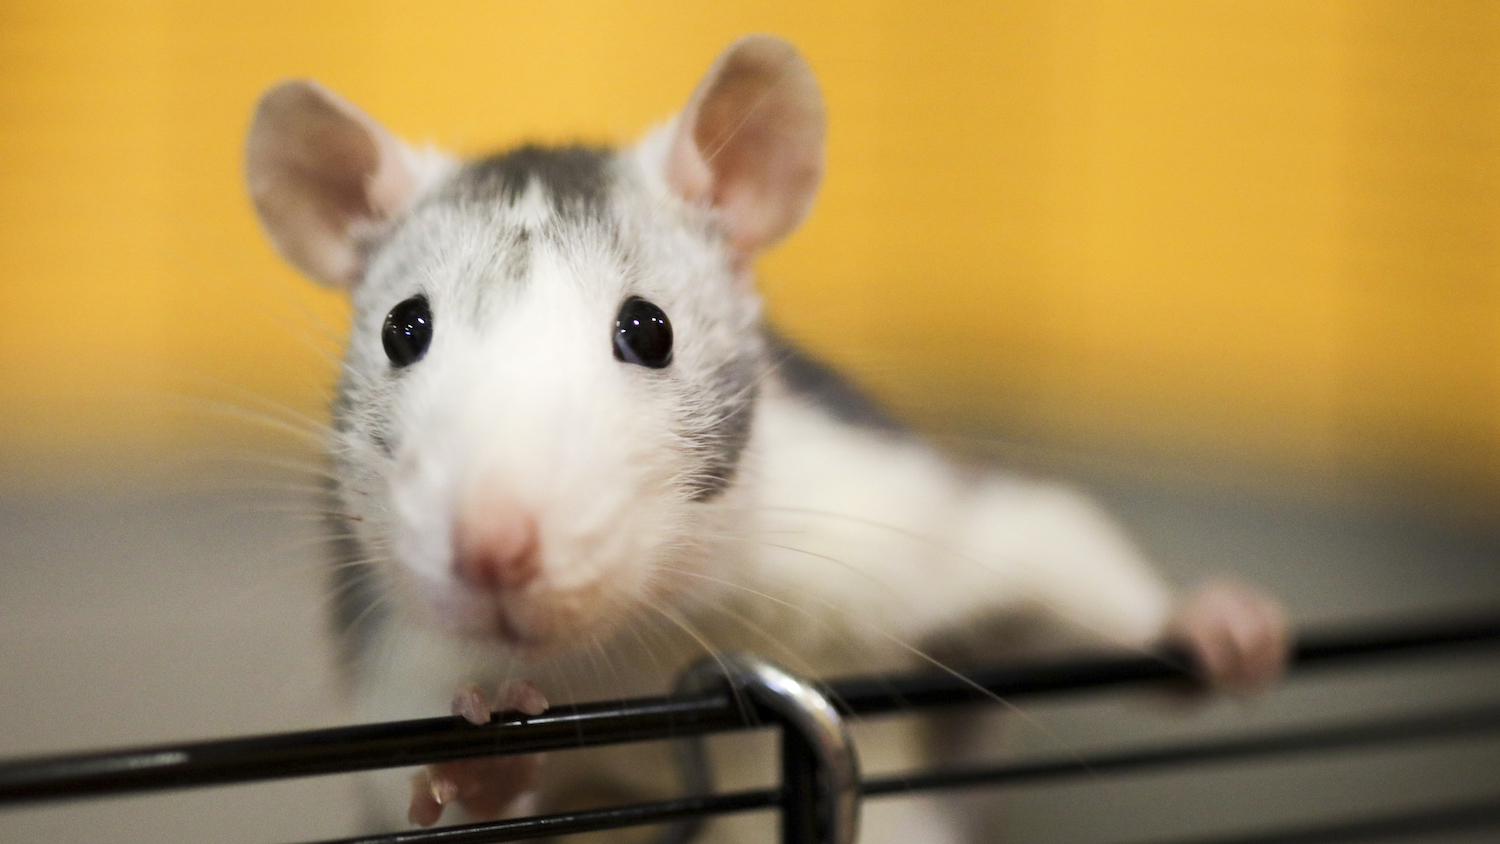 Rats blamed for disappearing alcohol